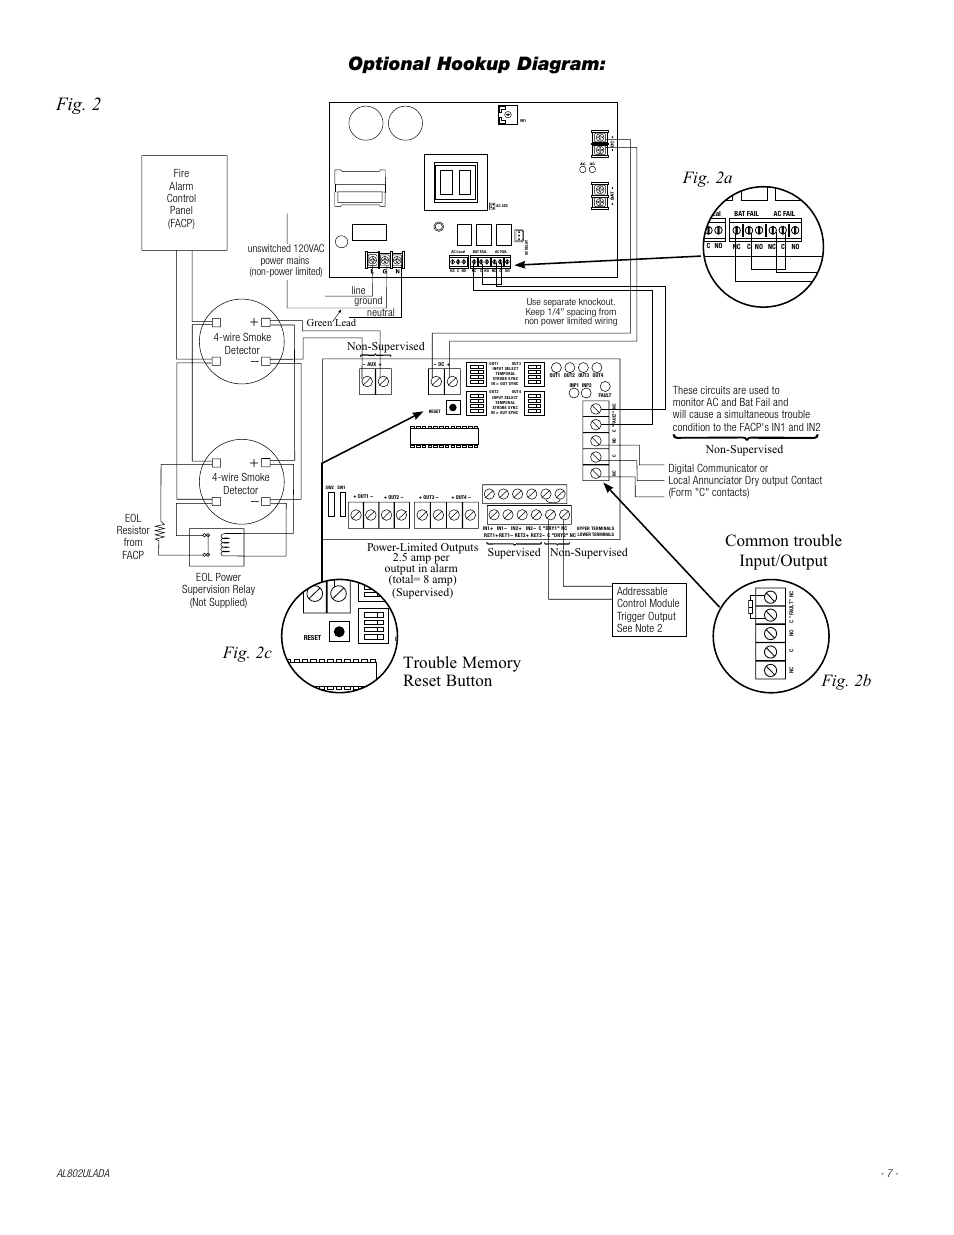 medium resolution of line ground neutral unswitched 120vac power mains non power limited fig 2 altronix al802ulada installation instructions user manual page 7 12